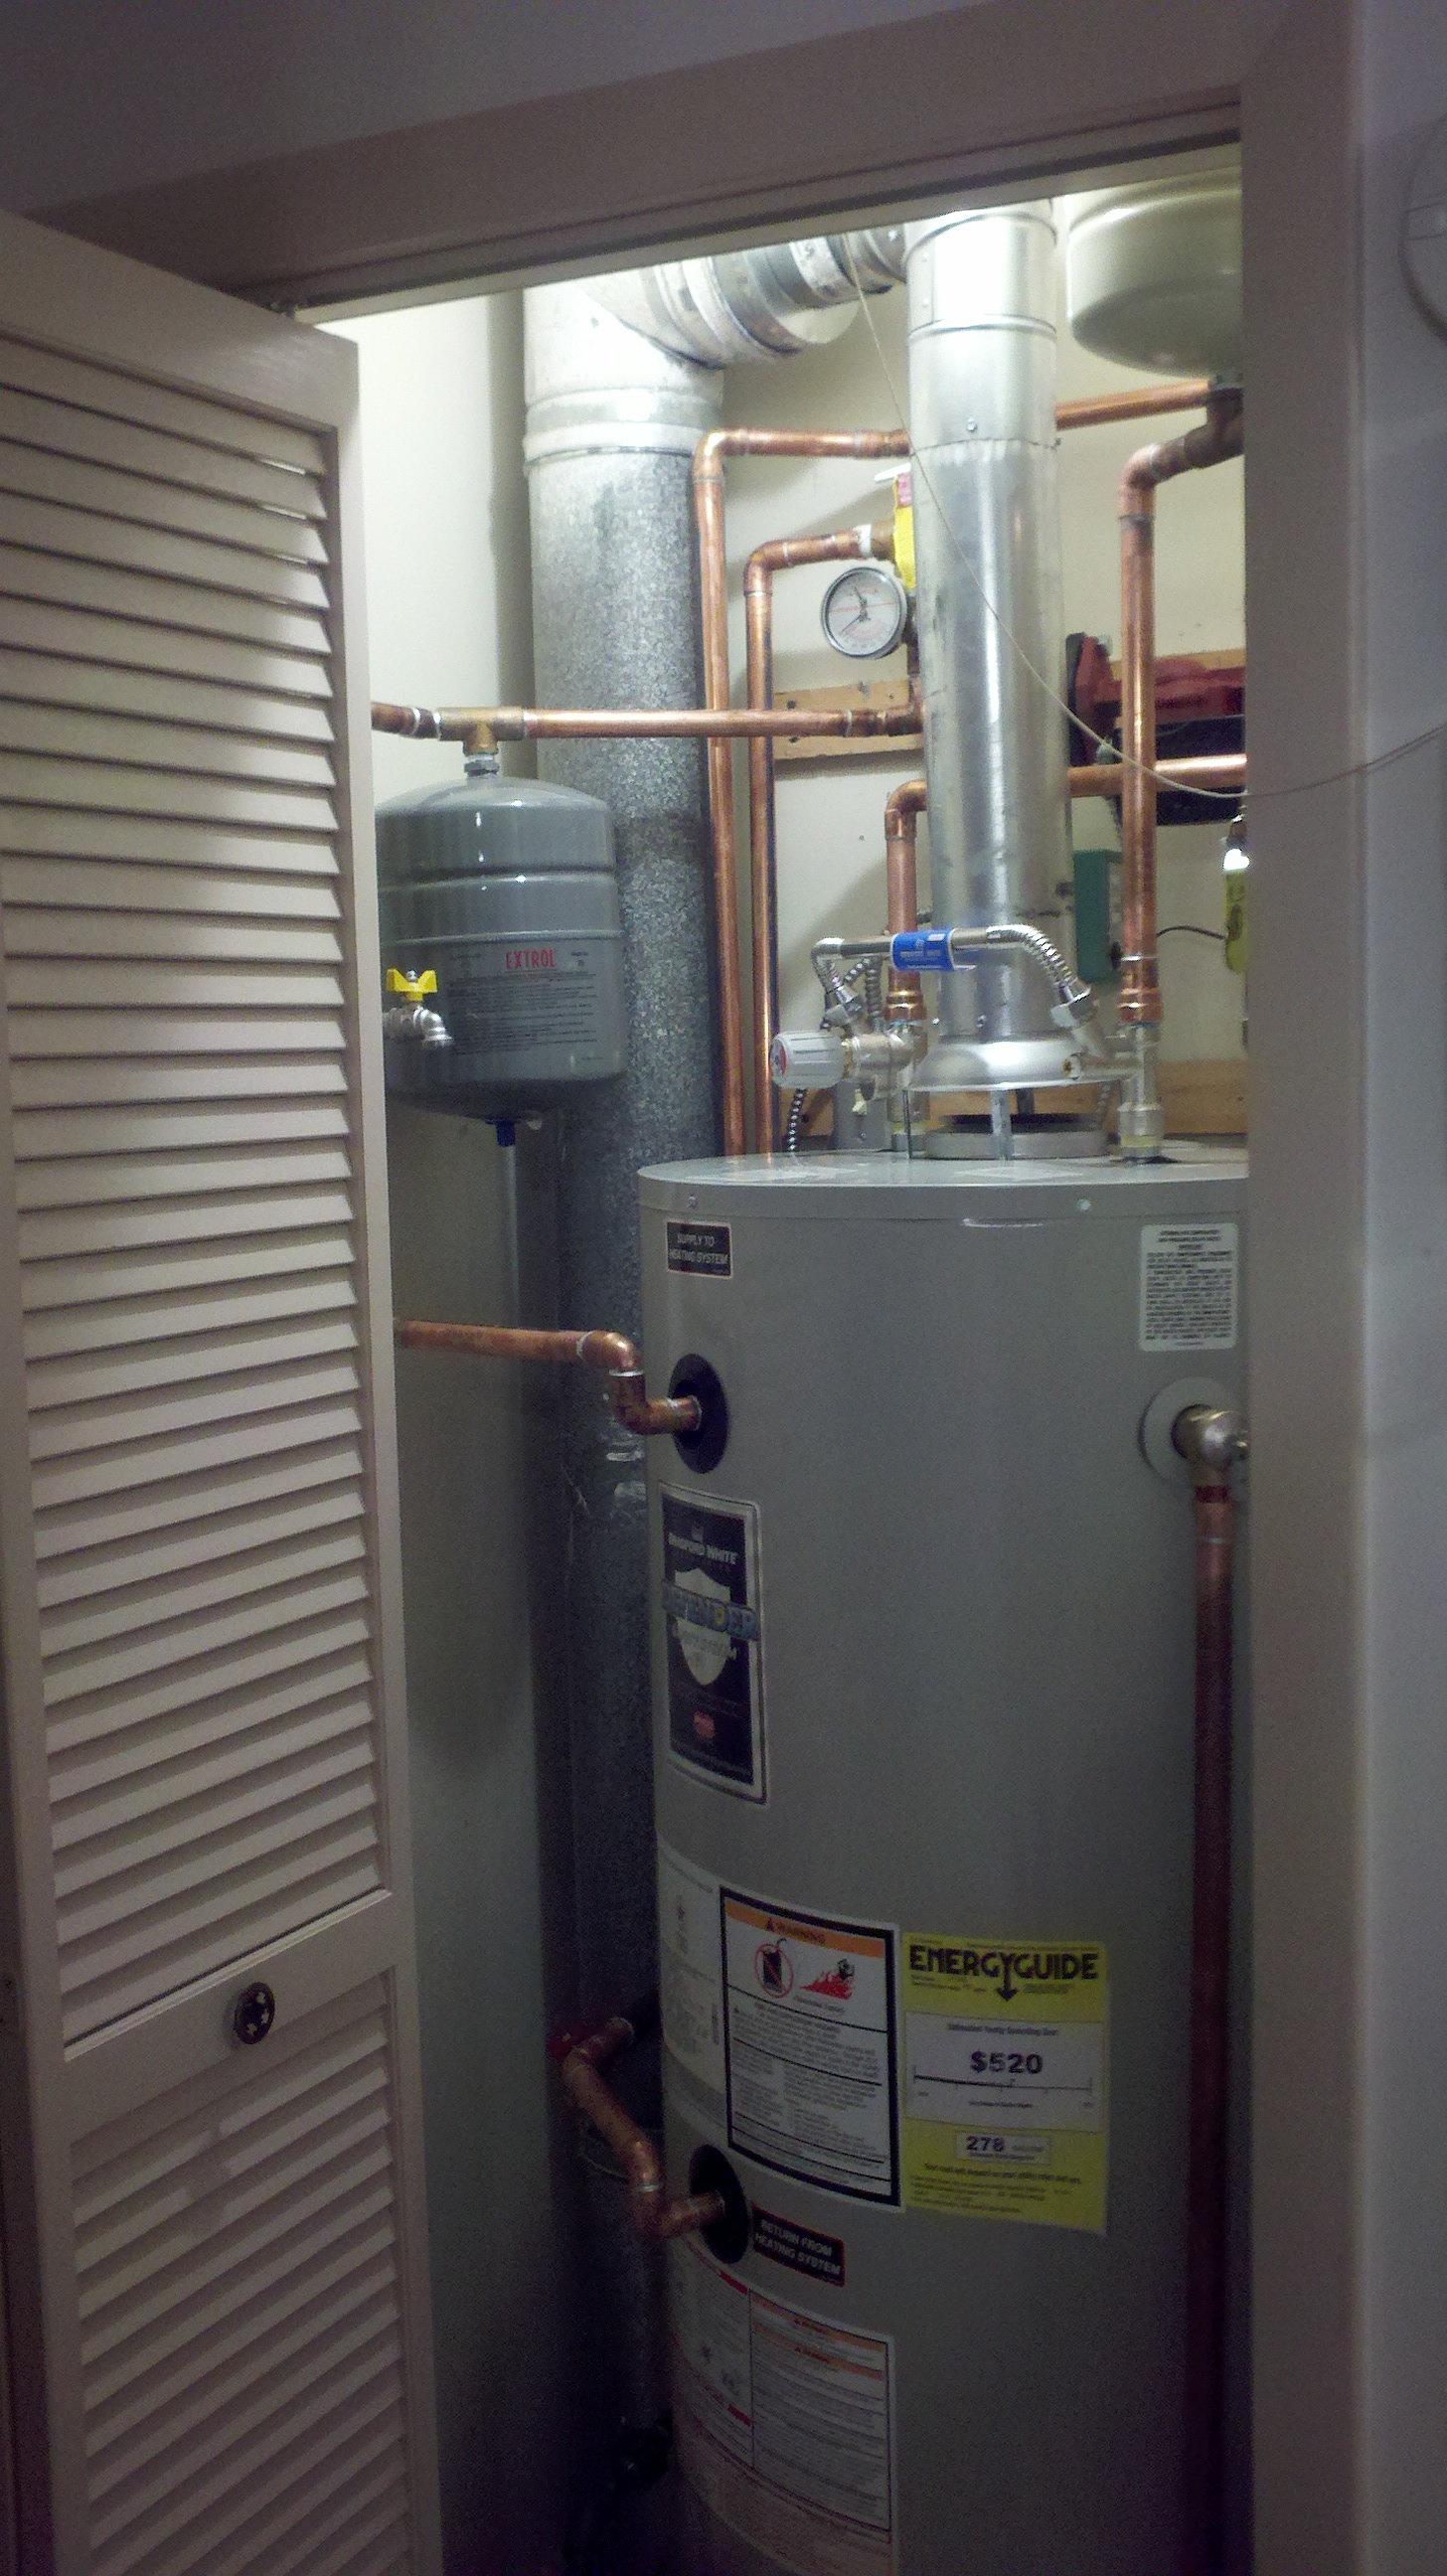 Bradford Water Heater >> Bradford White Combi Core. Gas Fired Heat and Hot Water Unit. | Steve's Blog!